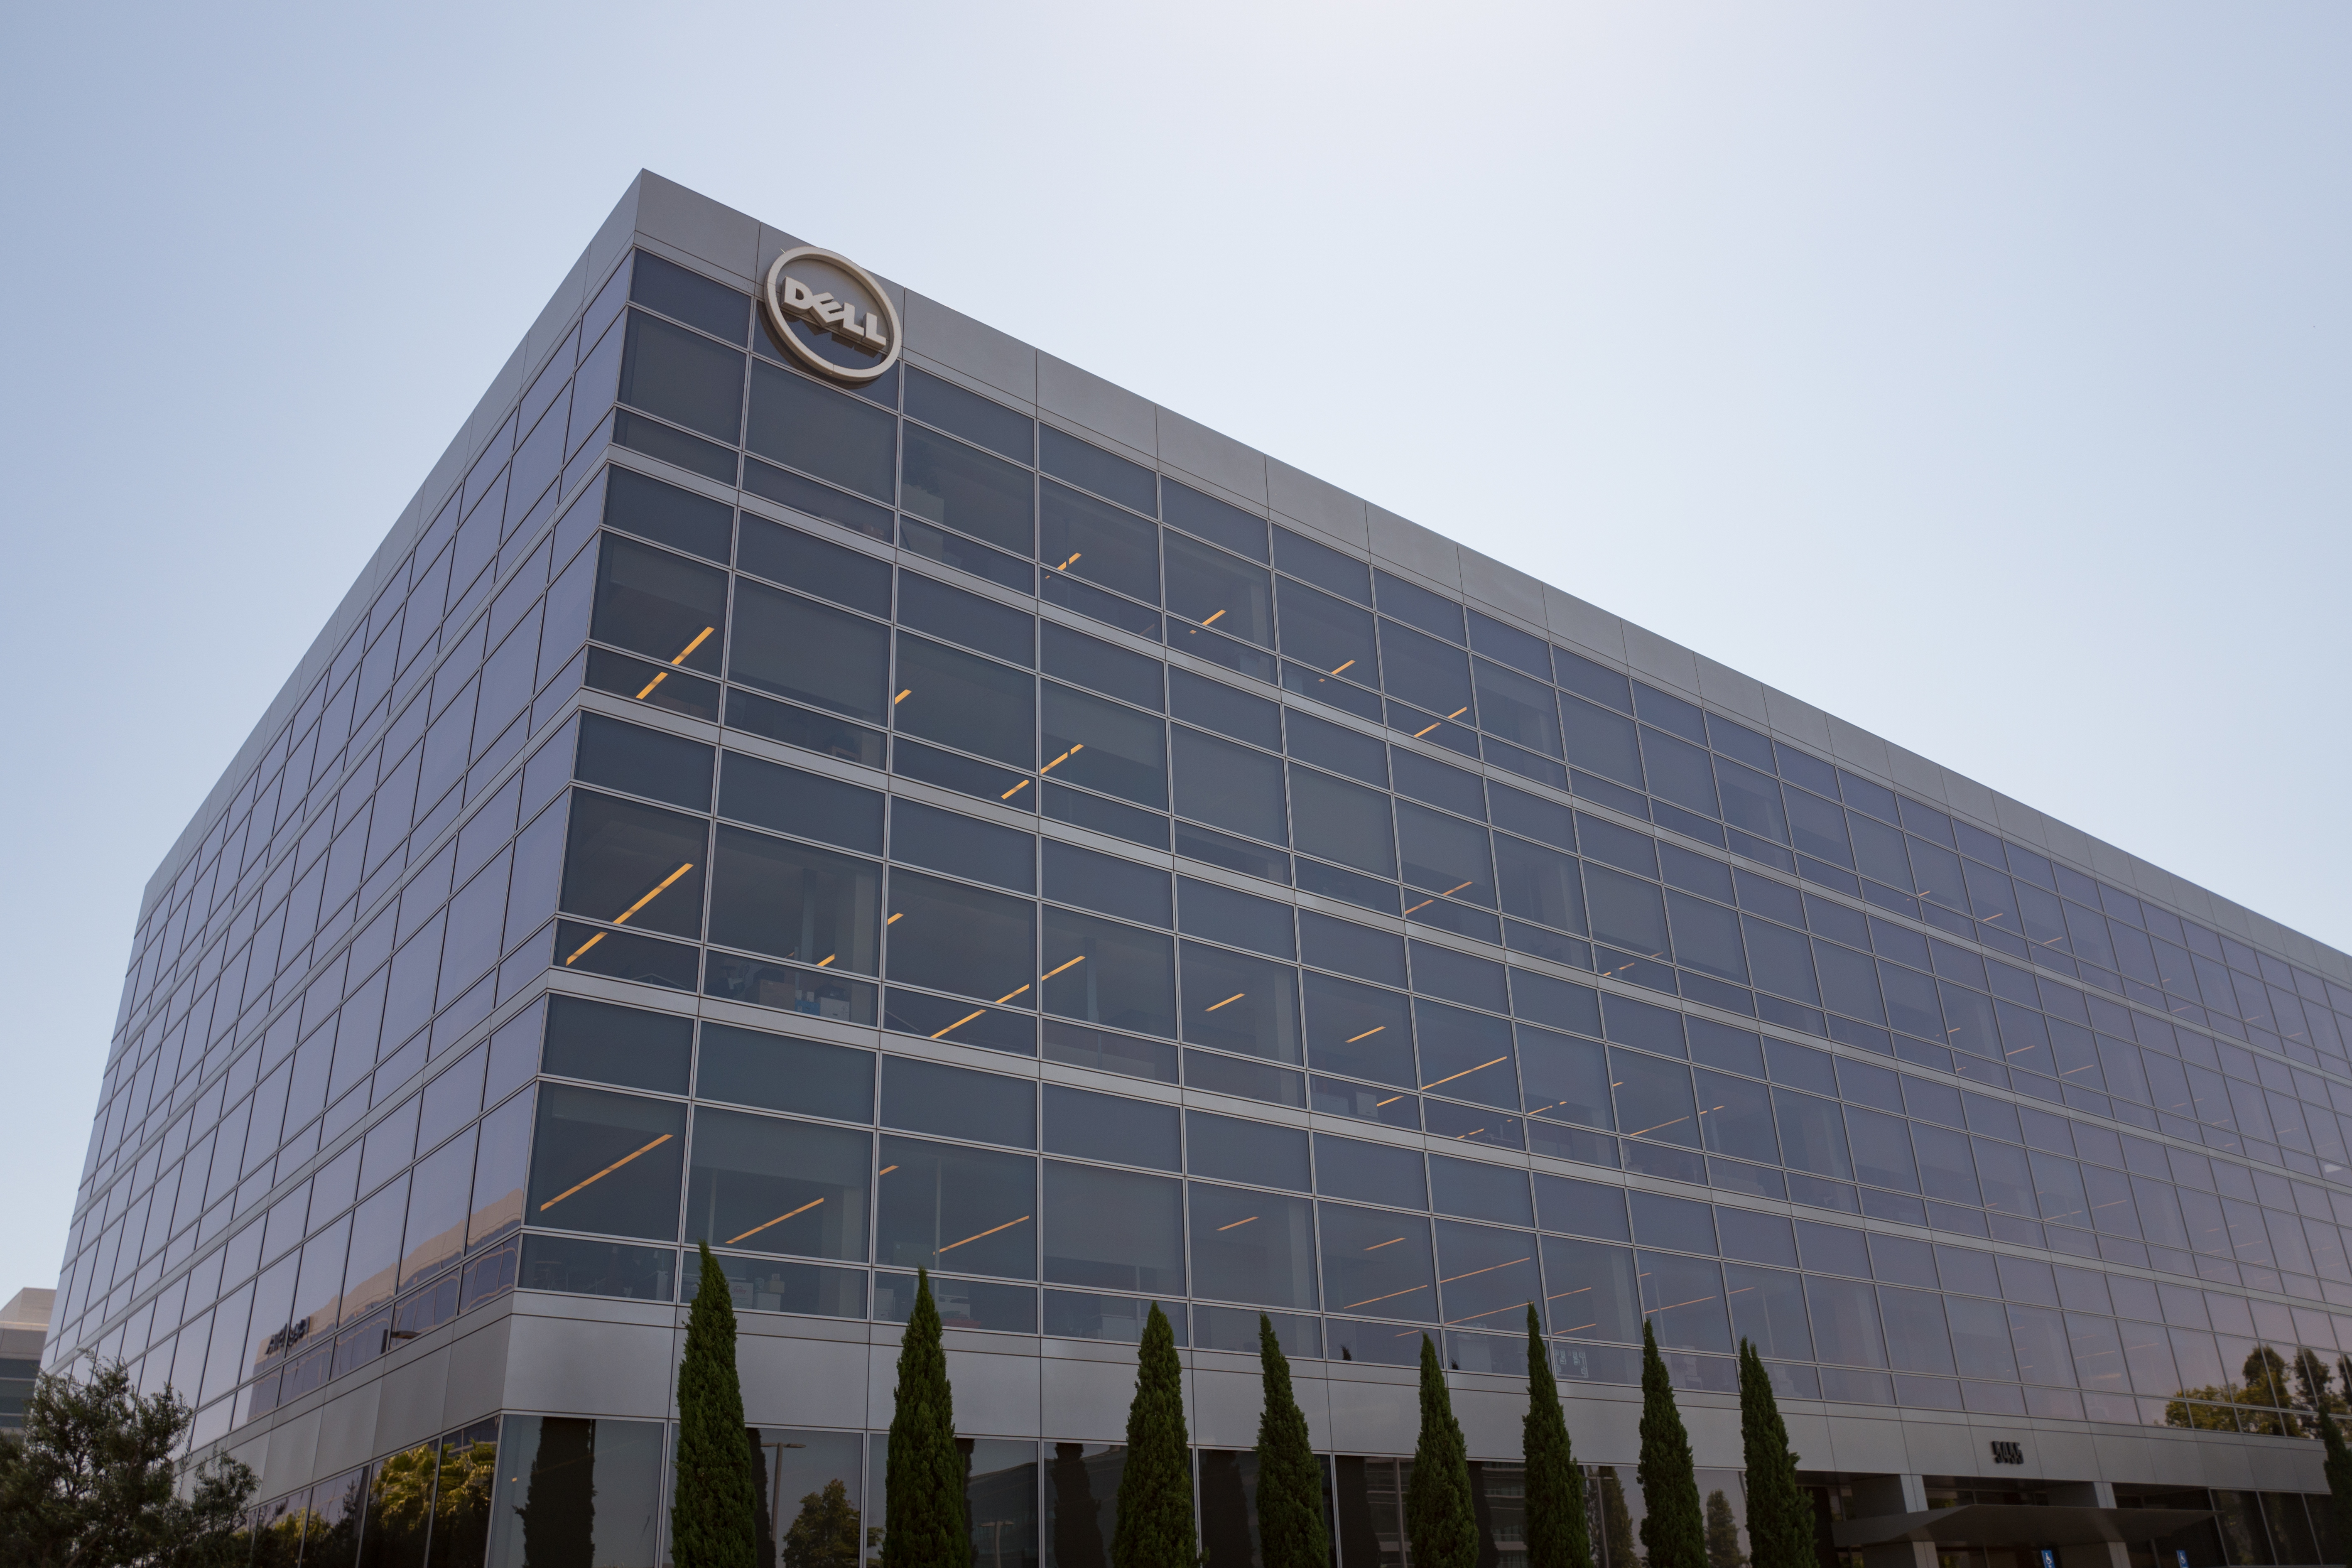 Regional headquarters, with logo and signage, for Dell Computers in the Silicon Valley town of Santa Clara, California, July 25, 2017.